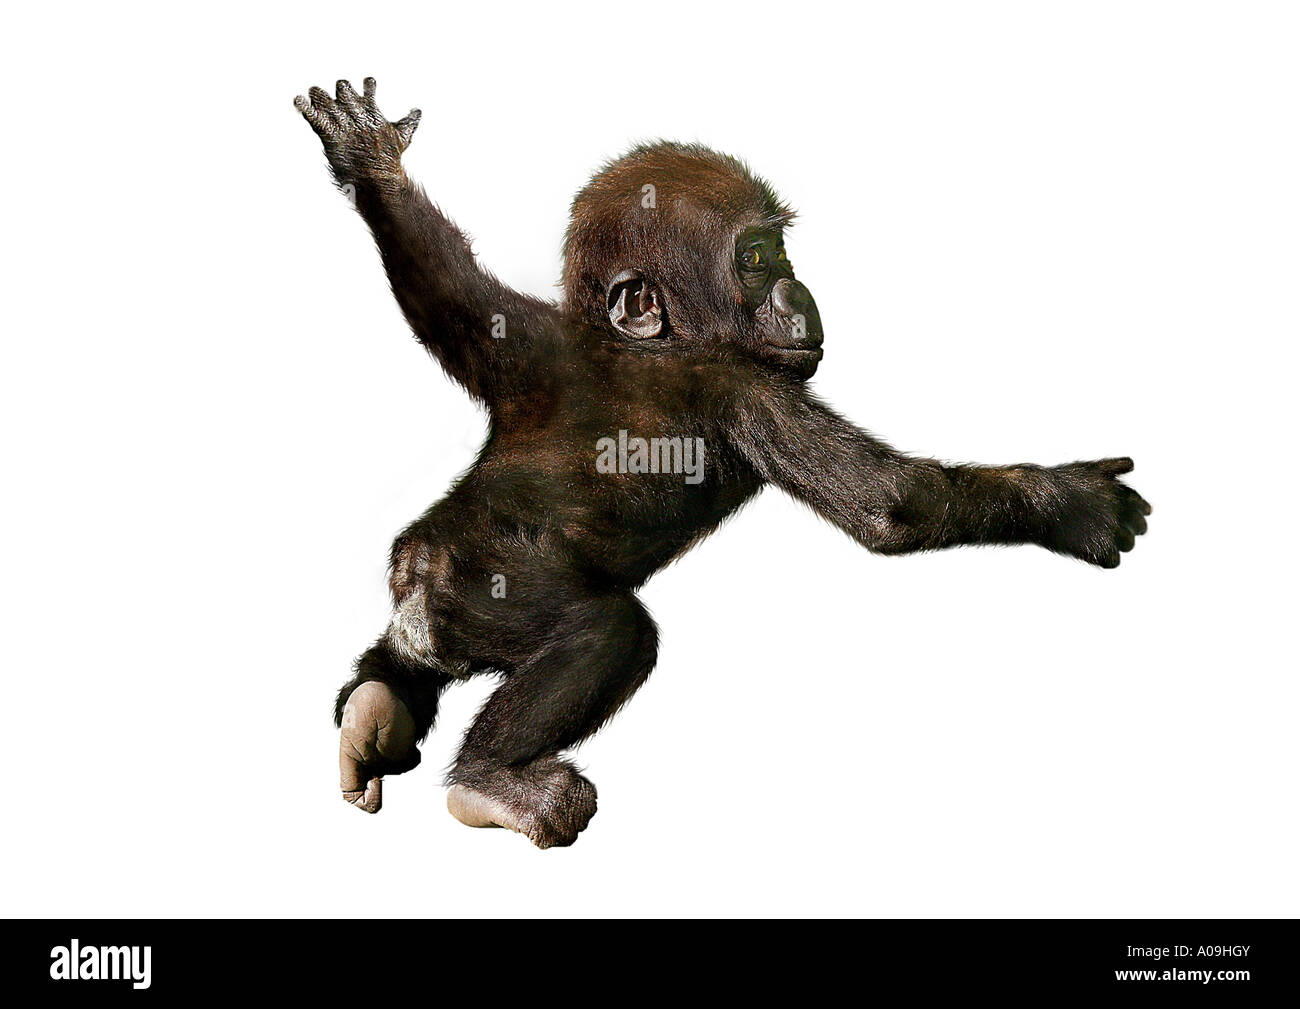 Apes Cut Out Stock Photos & Apes Cut Out Stock Images - Alamy